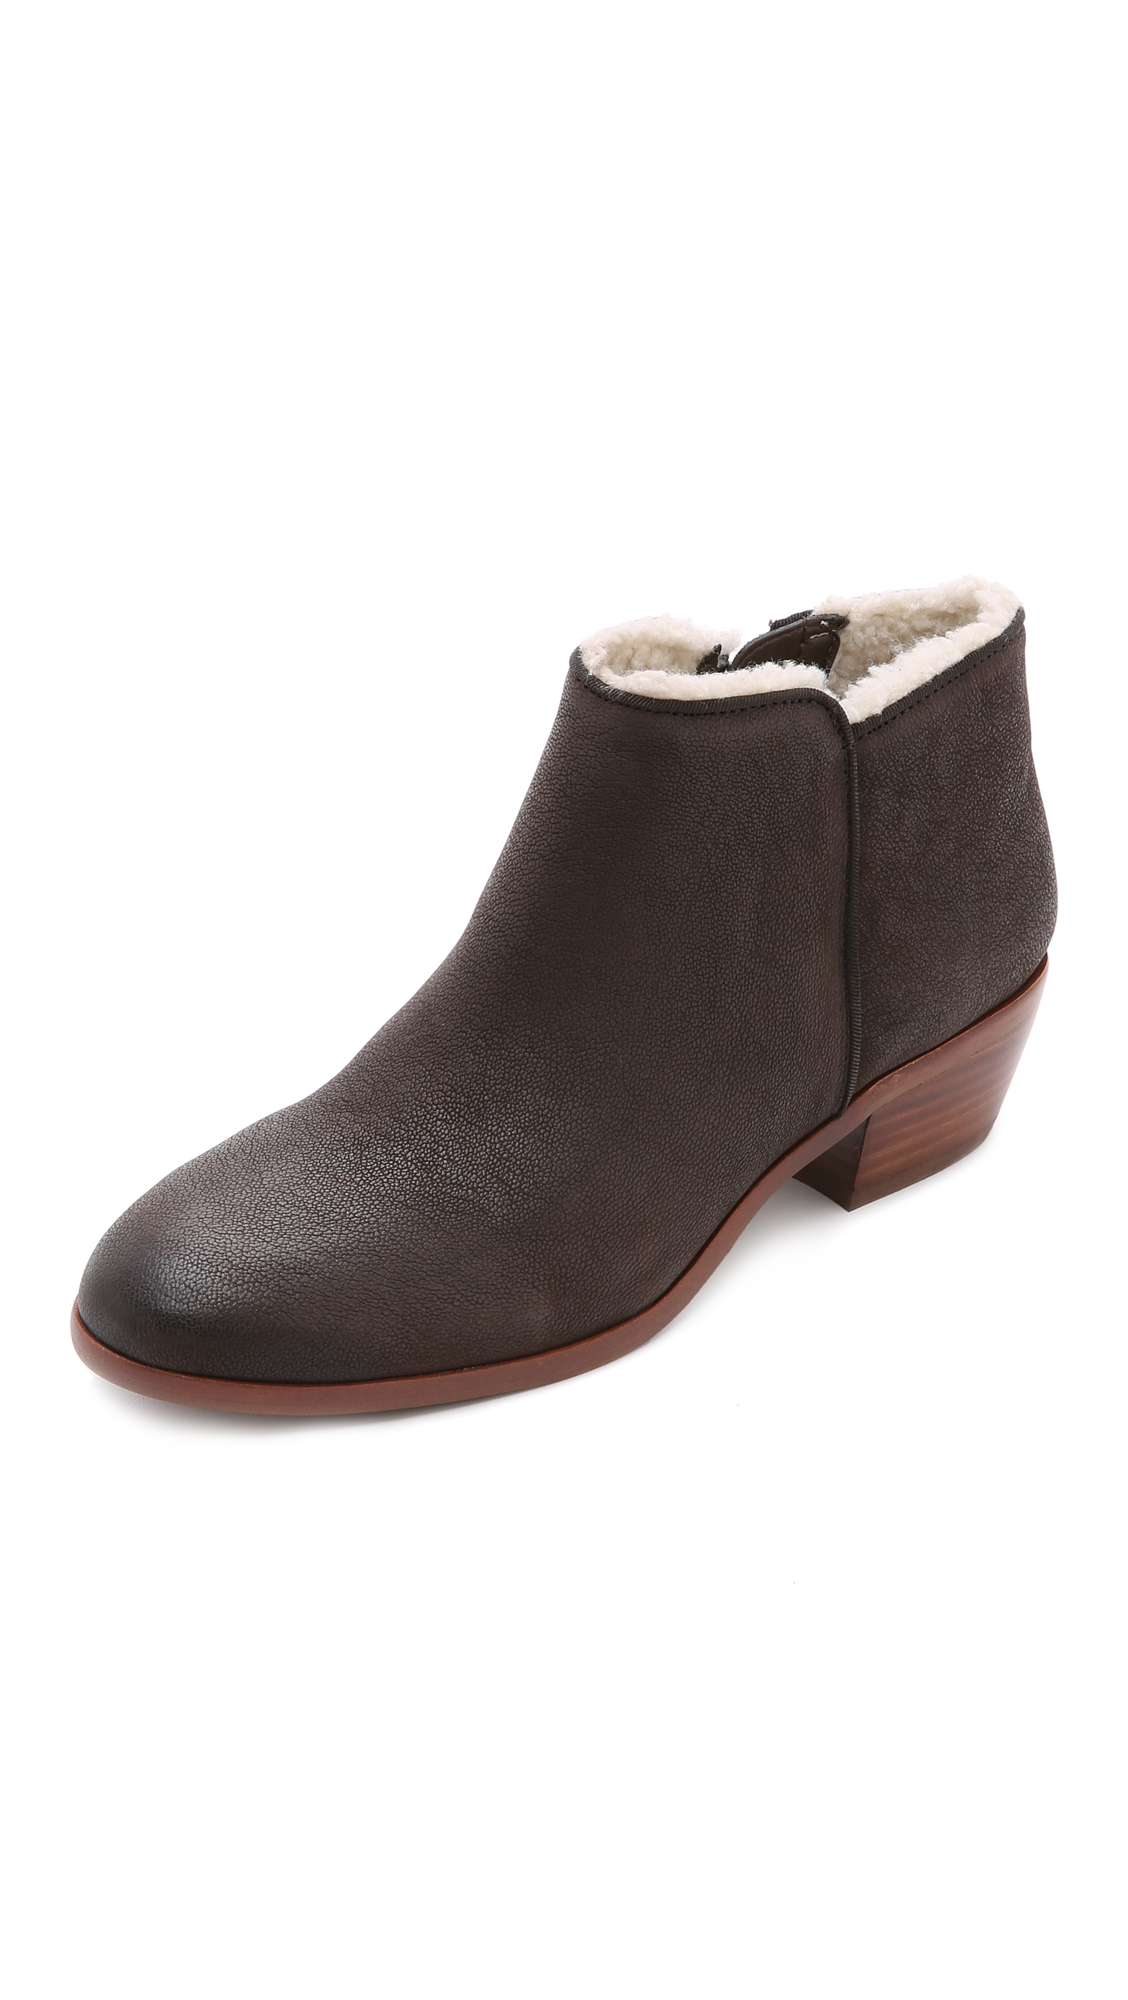 Sam Edelman Petty Lined Booties - Coffee